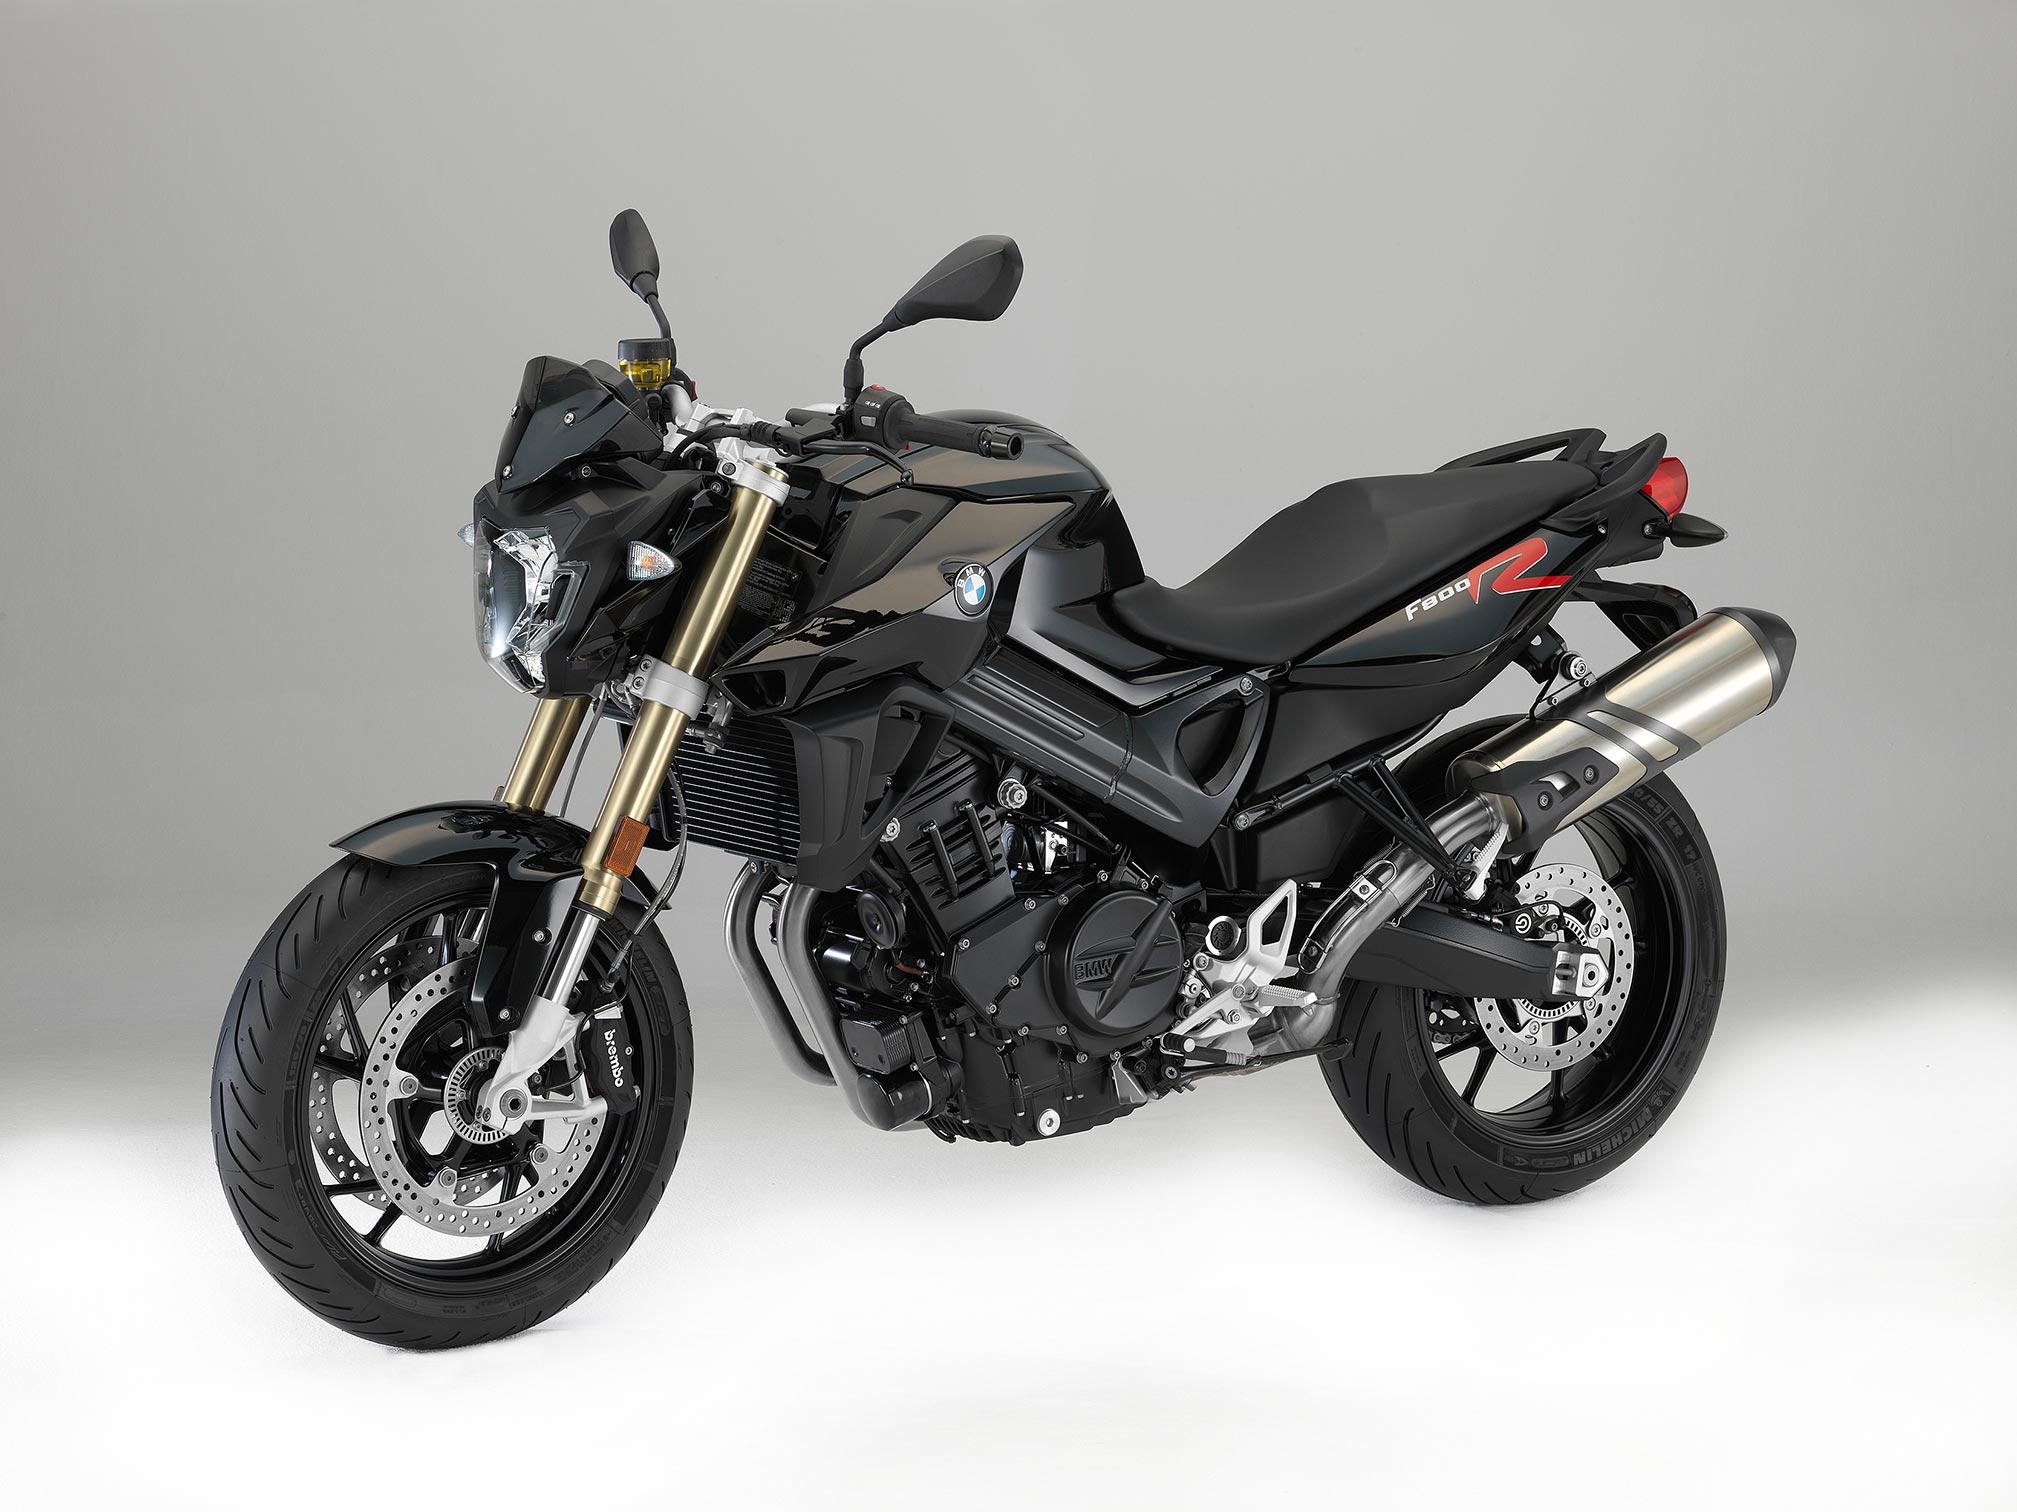 2017 BMW F800R Review